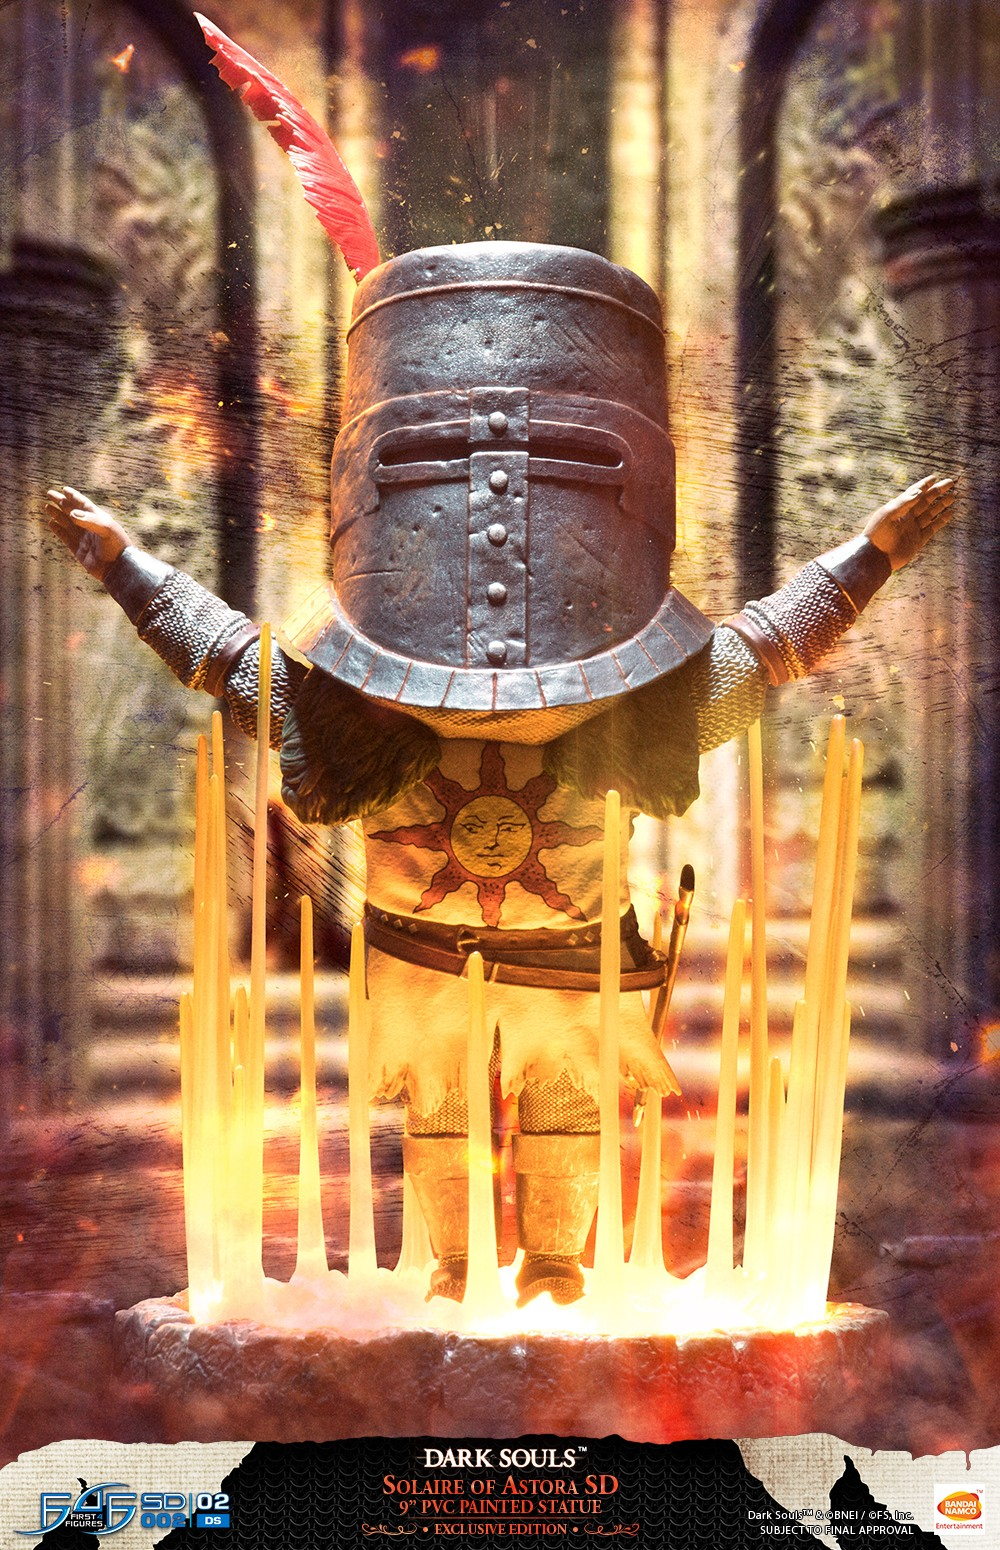 Solaire of Astora SD (Exclusive)